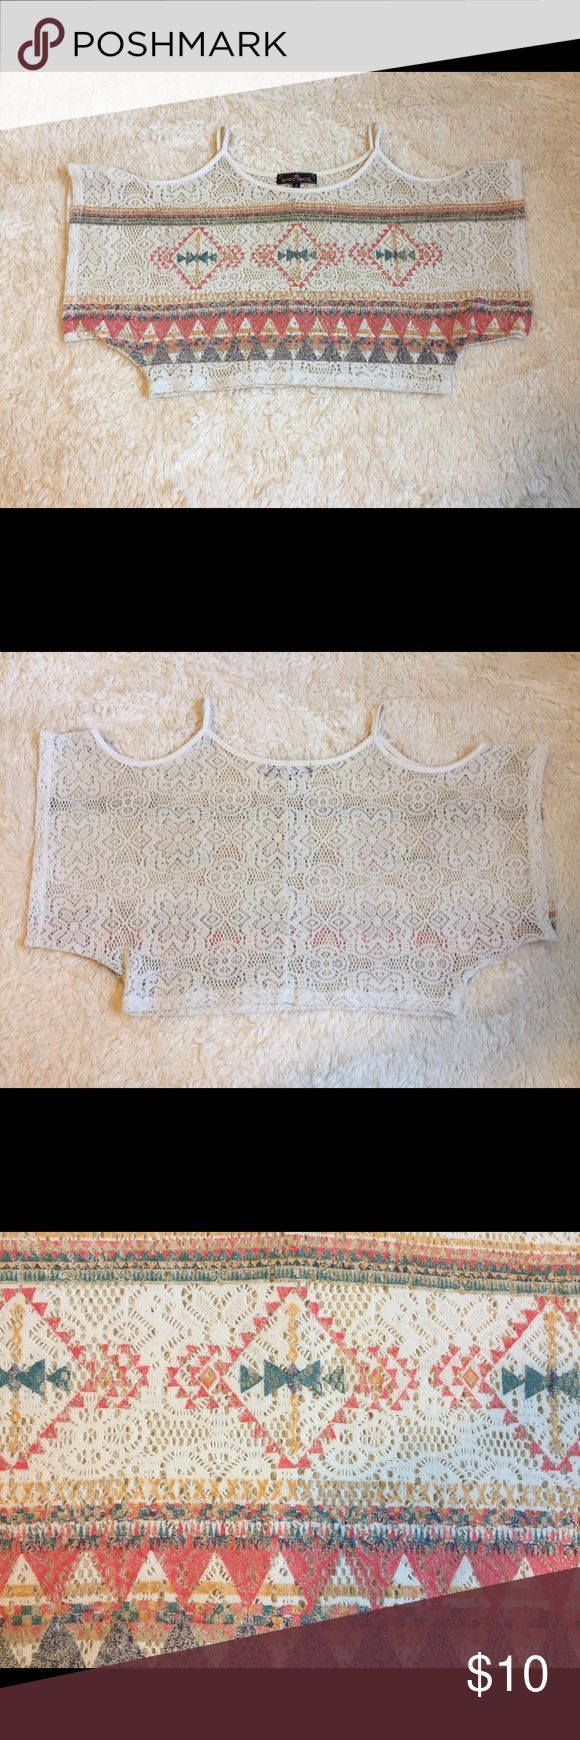 Crochet Aztec Crop Top Off-white Crochet Aztec Crop Top. It is somewhat see-through material , but with a nude bra you won't be able to see anything. The sleeves have cut outs that show the shoulders. In great condition, but does have a little discoloration on the spaghetti straps and neckline , not noticeable because it's already an off-white color (Picture 4). Size S. Almost Famous Tops Crop Tops